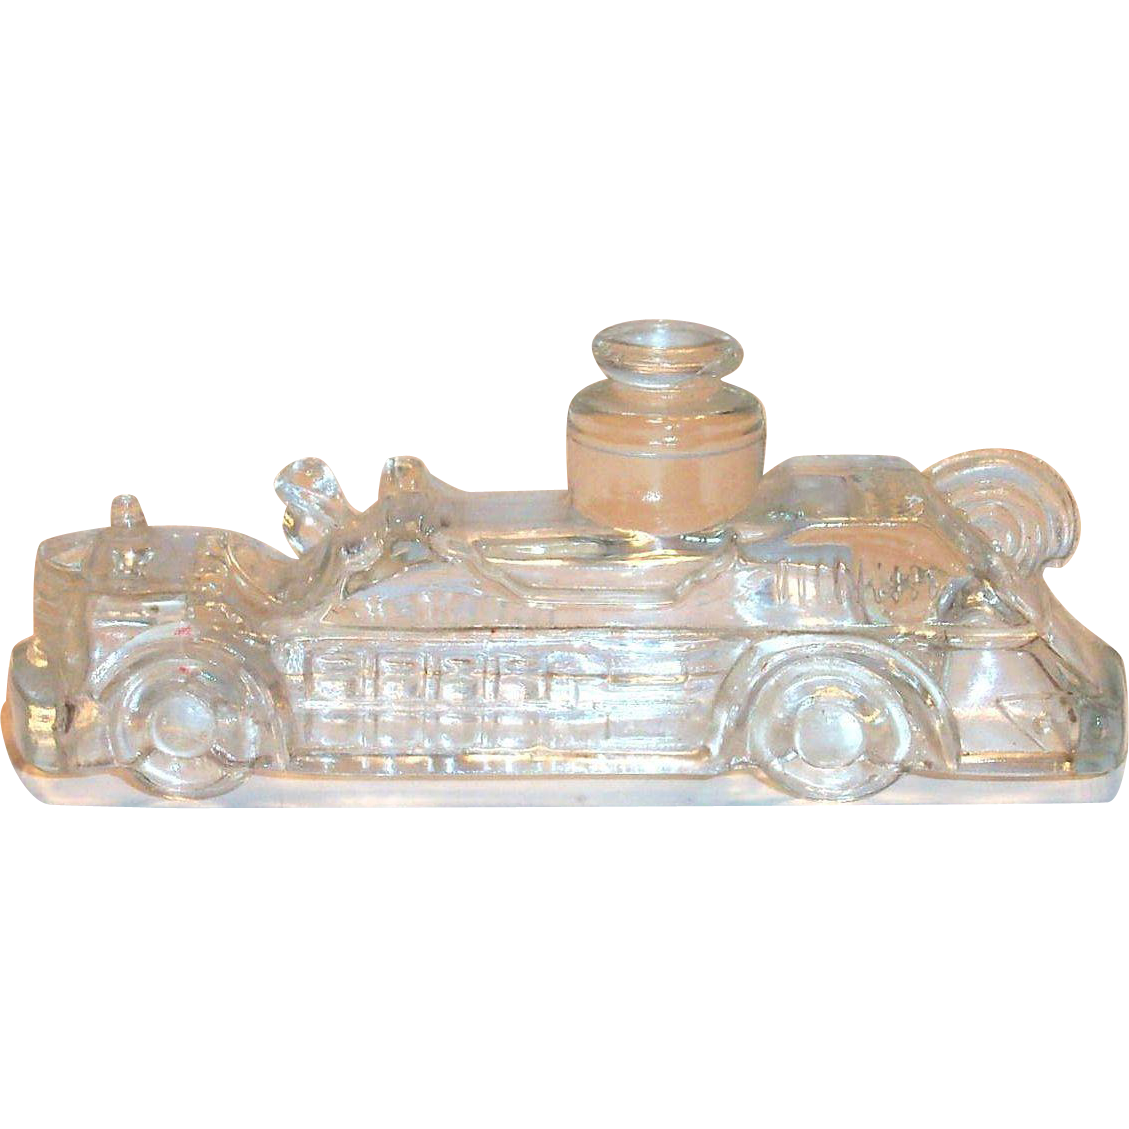 Vintage Glass Fire Engine Candy Holder